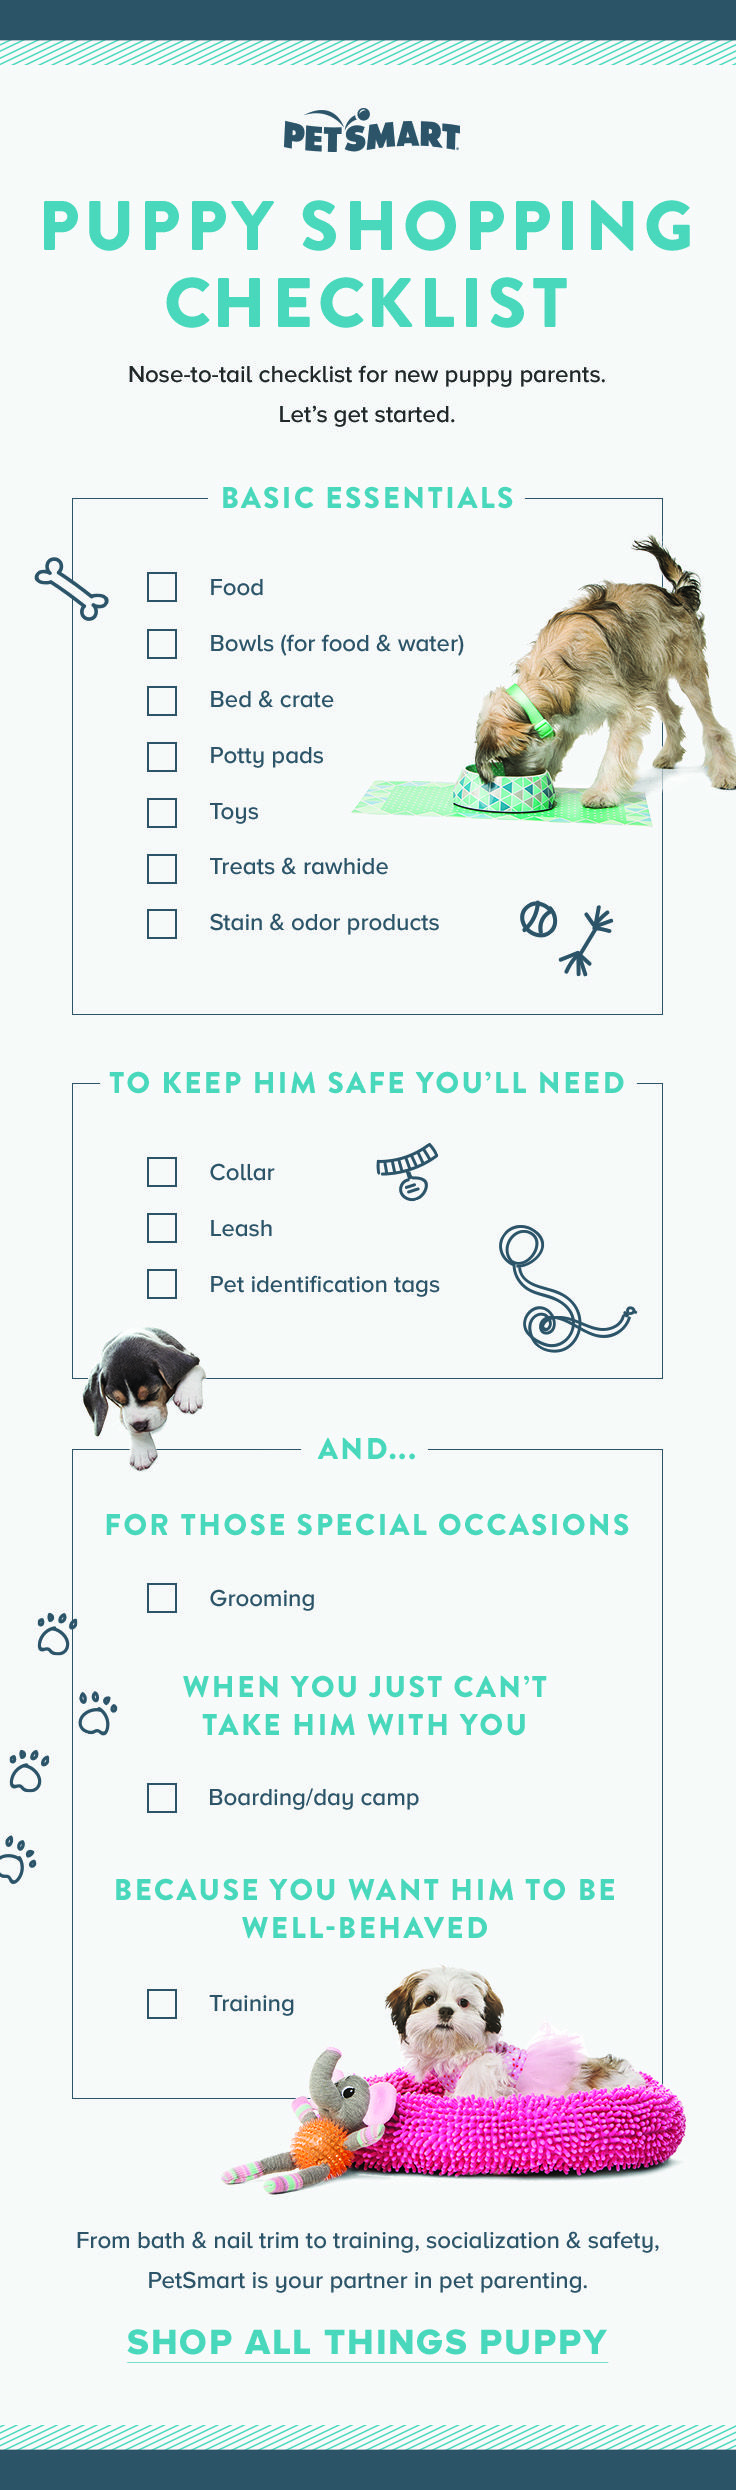 Are you the pet parent of a new puppy? Pin, print or favorite this puppy shopping checklist to take the guesswork out of what your new pet needs!